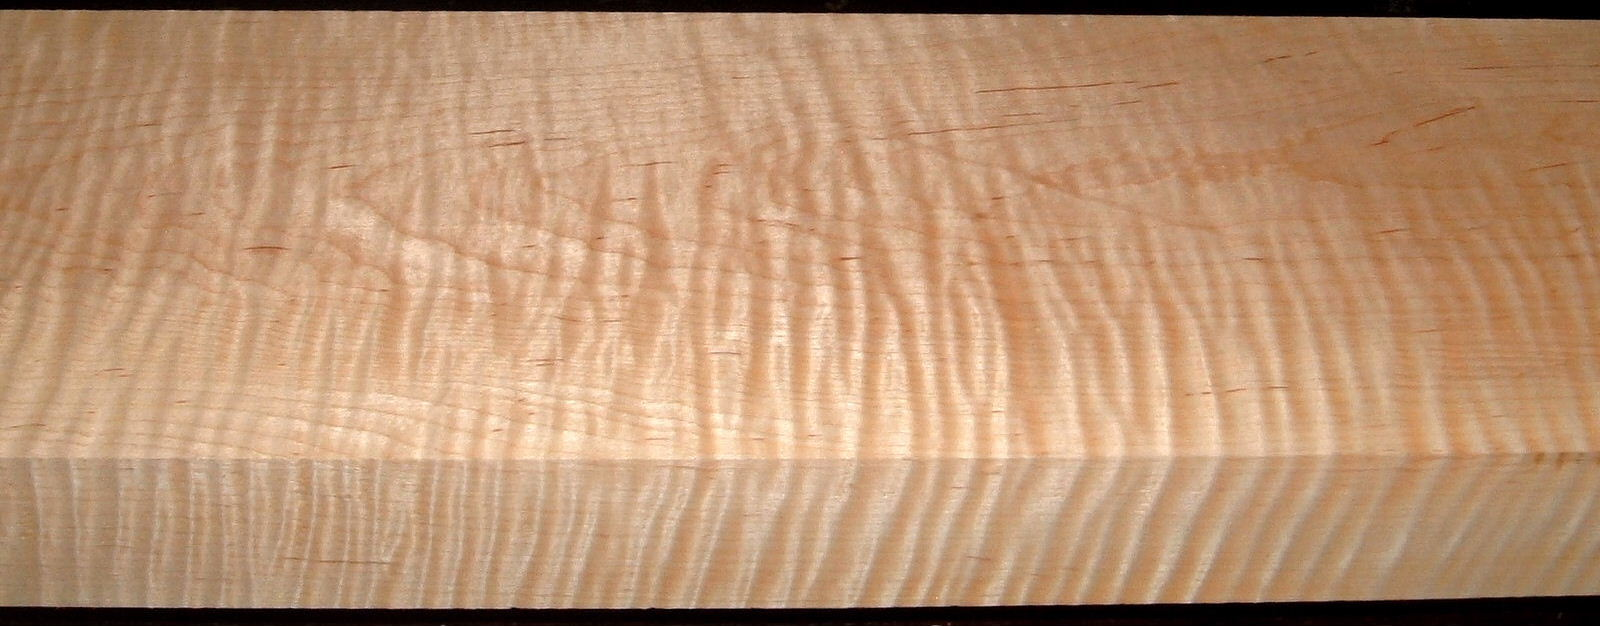 M2006-483, 1-7/8x5-1/2x55, 8/4 Curly Tiger Maple